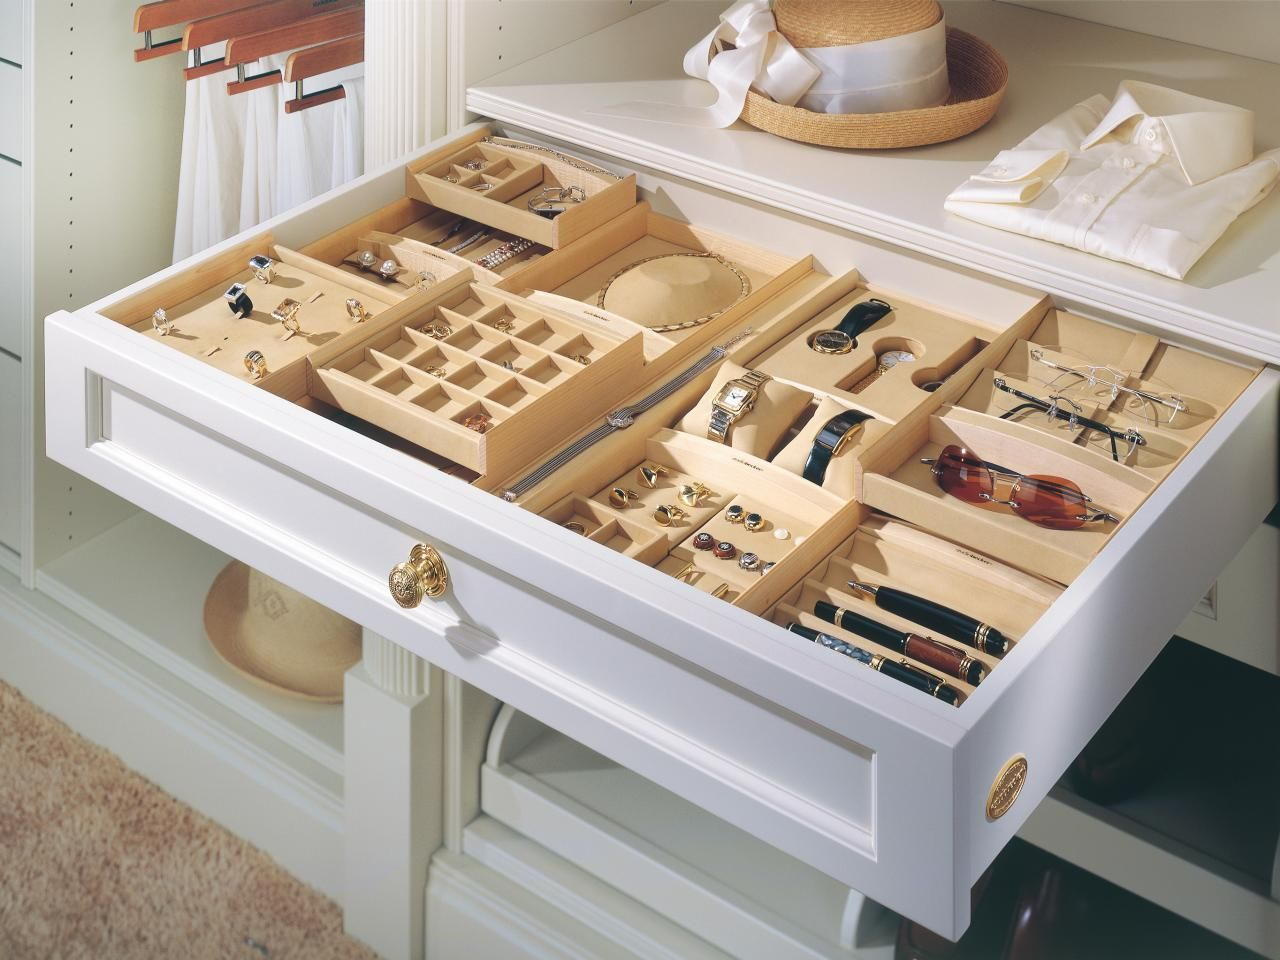 Bracelet Organizer Ideas Best 25 Jewelry Organizer Drawer Ideas On Pinterest Closet